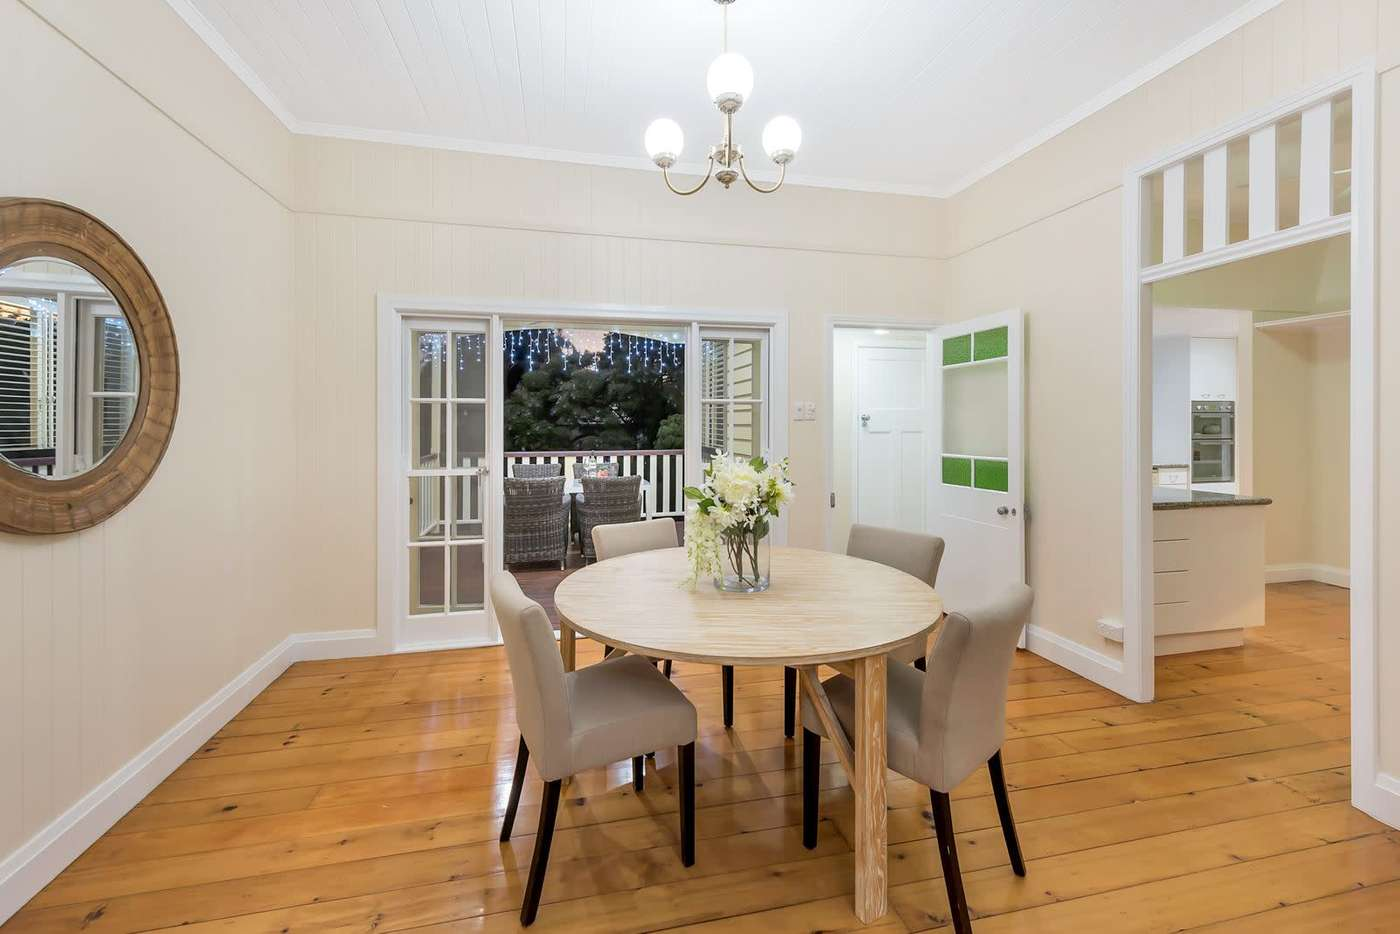 Sixth view of Homely house listing, 20 Newbery Street, Newmarket QLD 4051